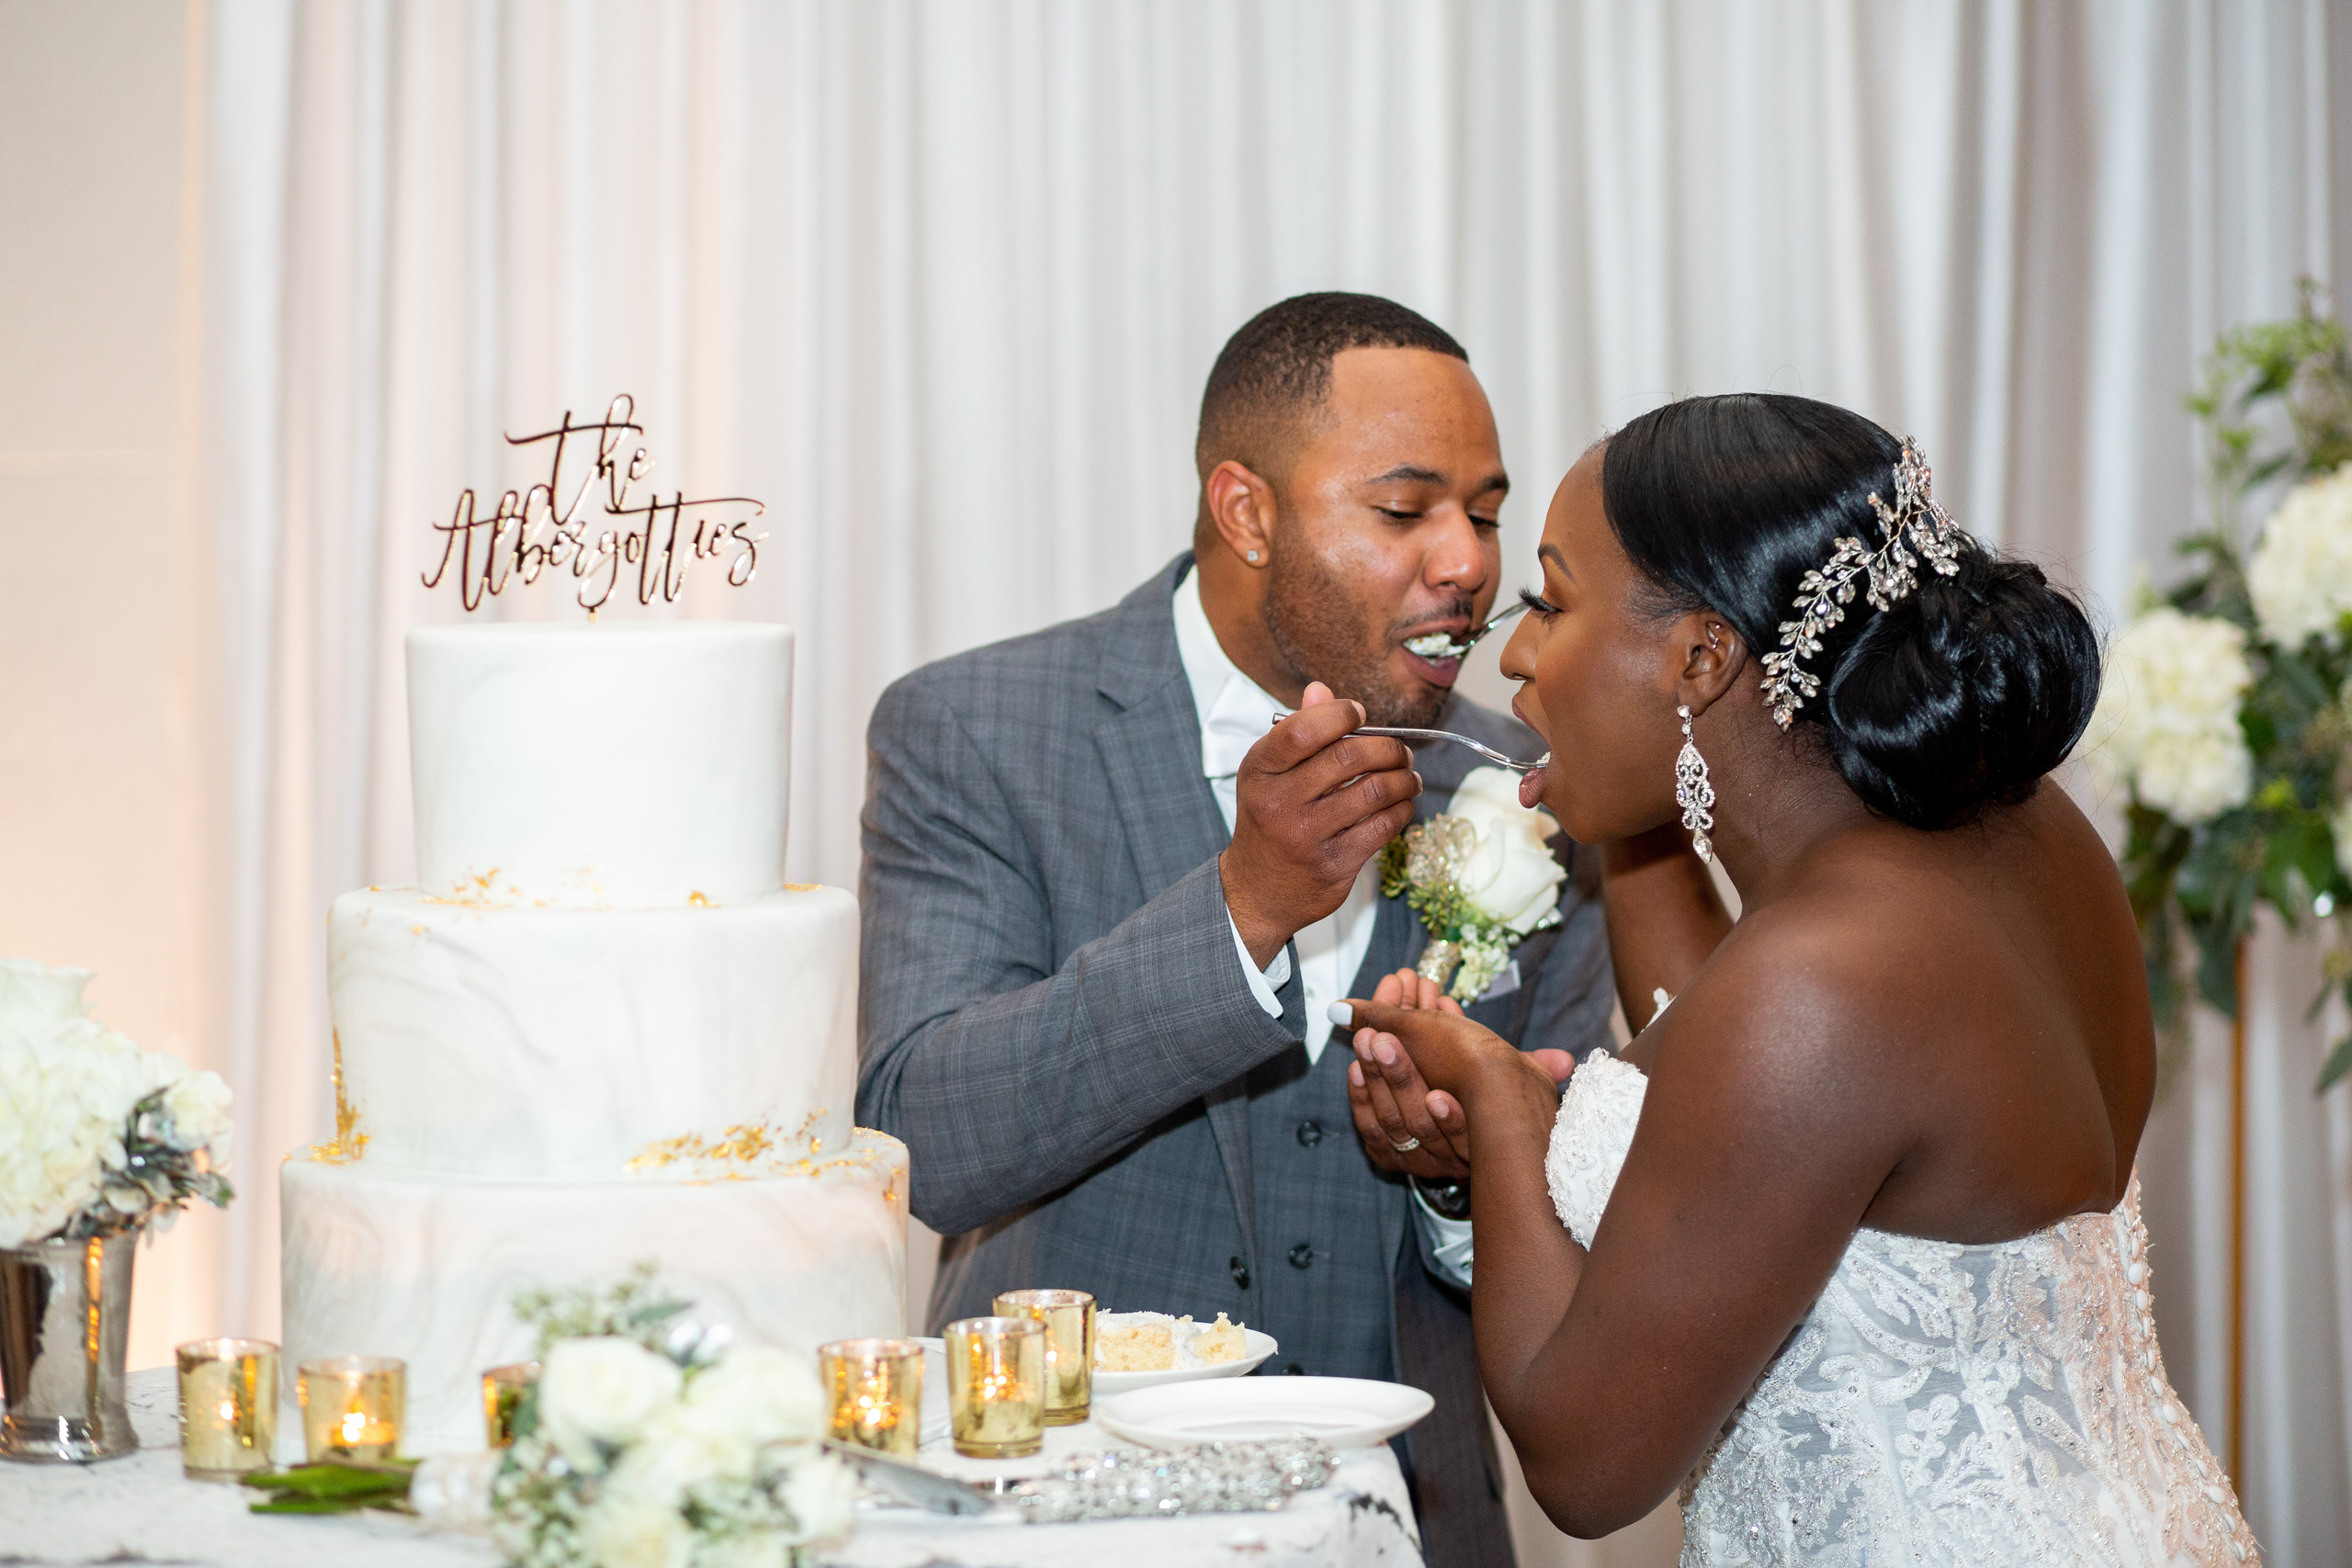 The bride and groom share the first slice of their decadent, classy wedding cake during the wedding reception at the Hilton Main in Norfolk, Virginia.